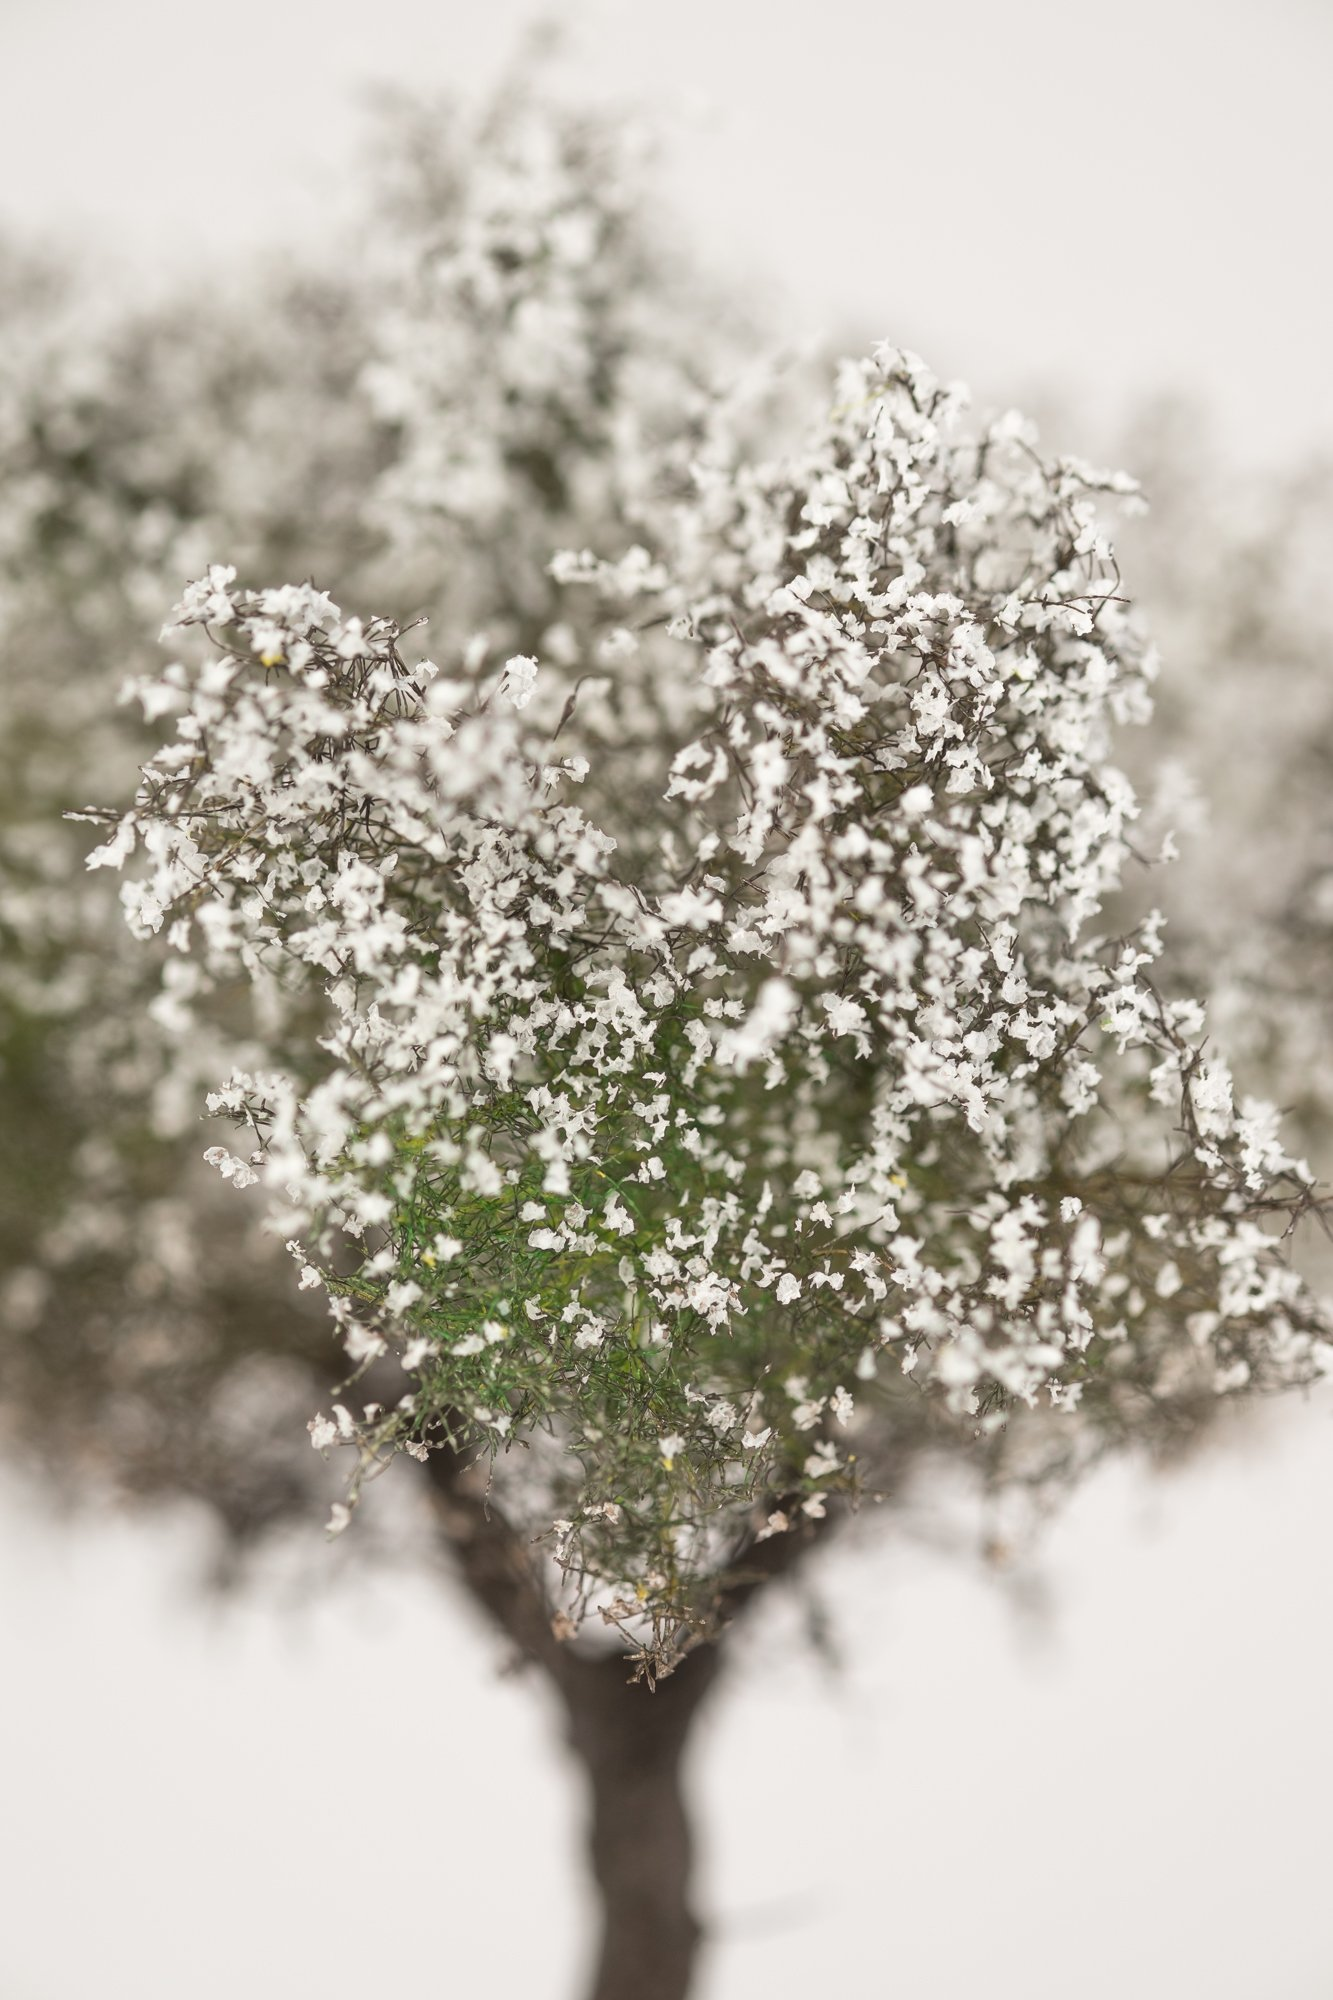 Closeup of white, blooming apple tree model. Made from high quality model supplies by Primo Models.